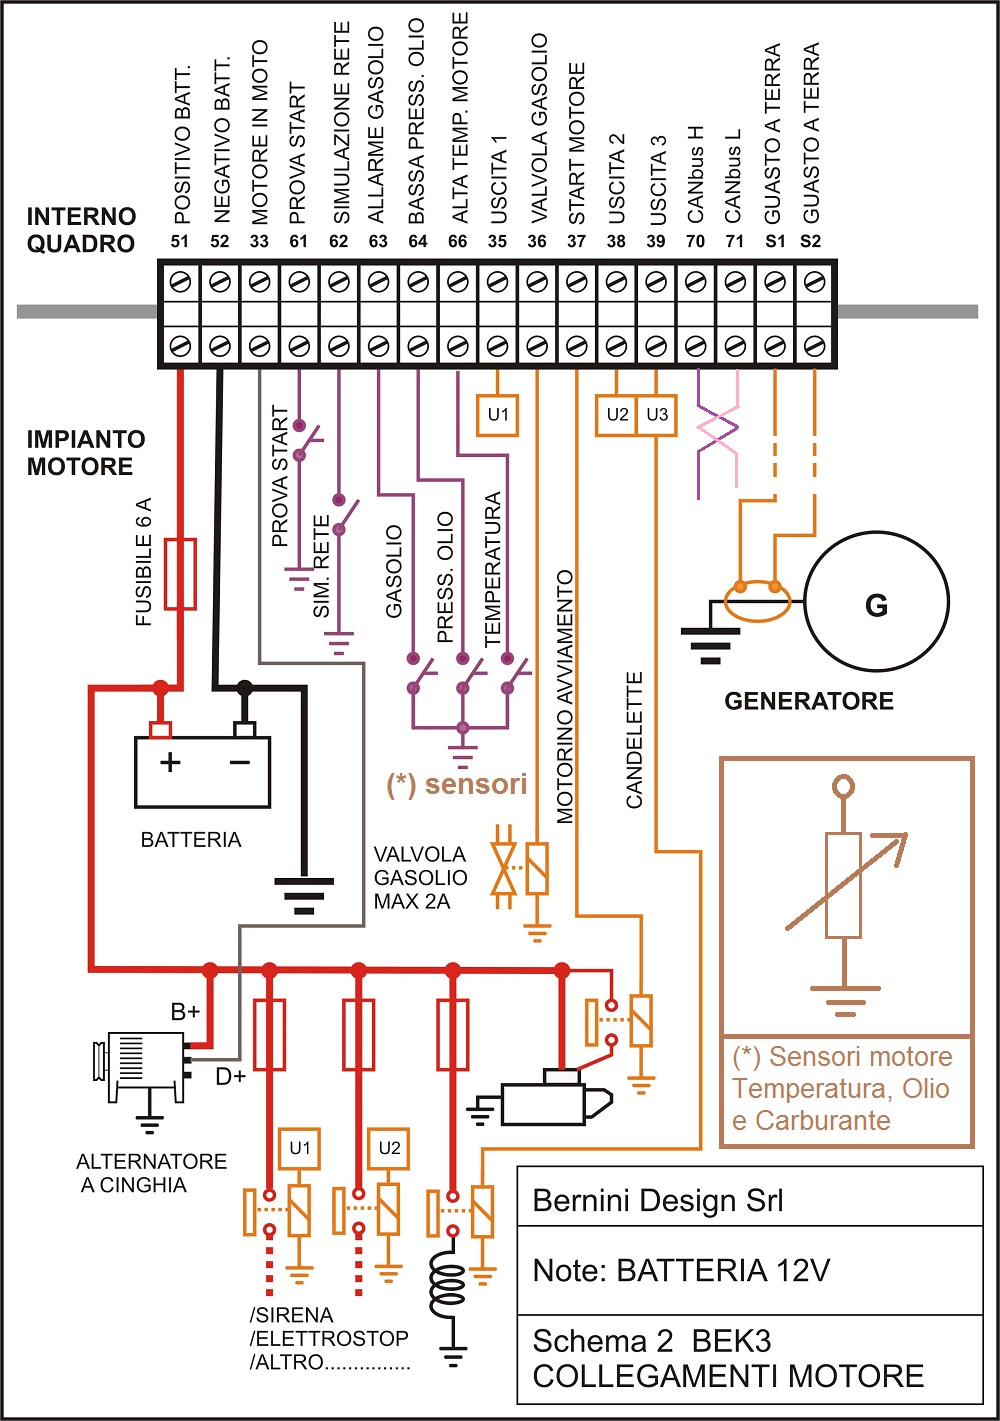 house wiring diagram images cat 3 cable quadro automatico gruppo elettrogeno 25 kva – generator controller manufacturers